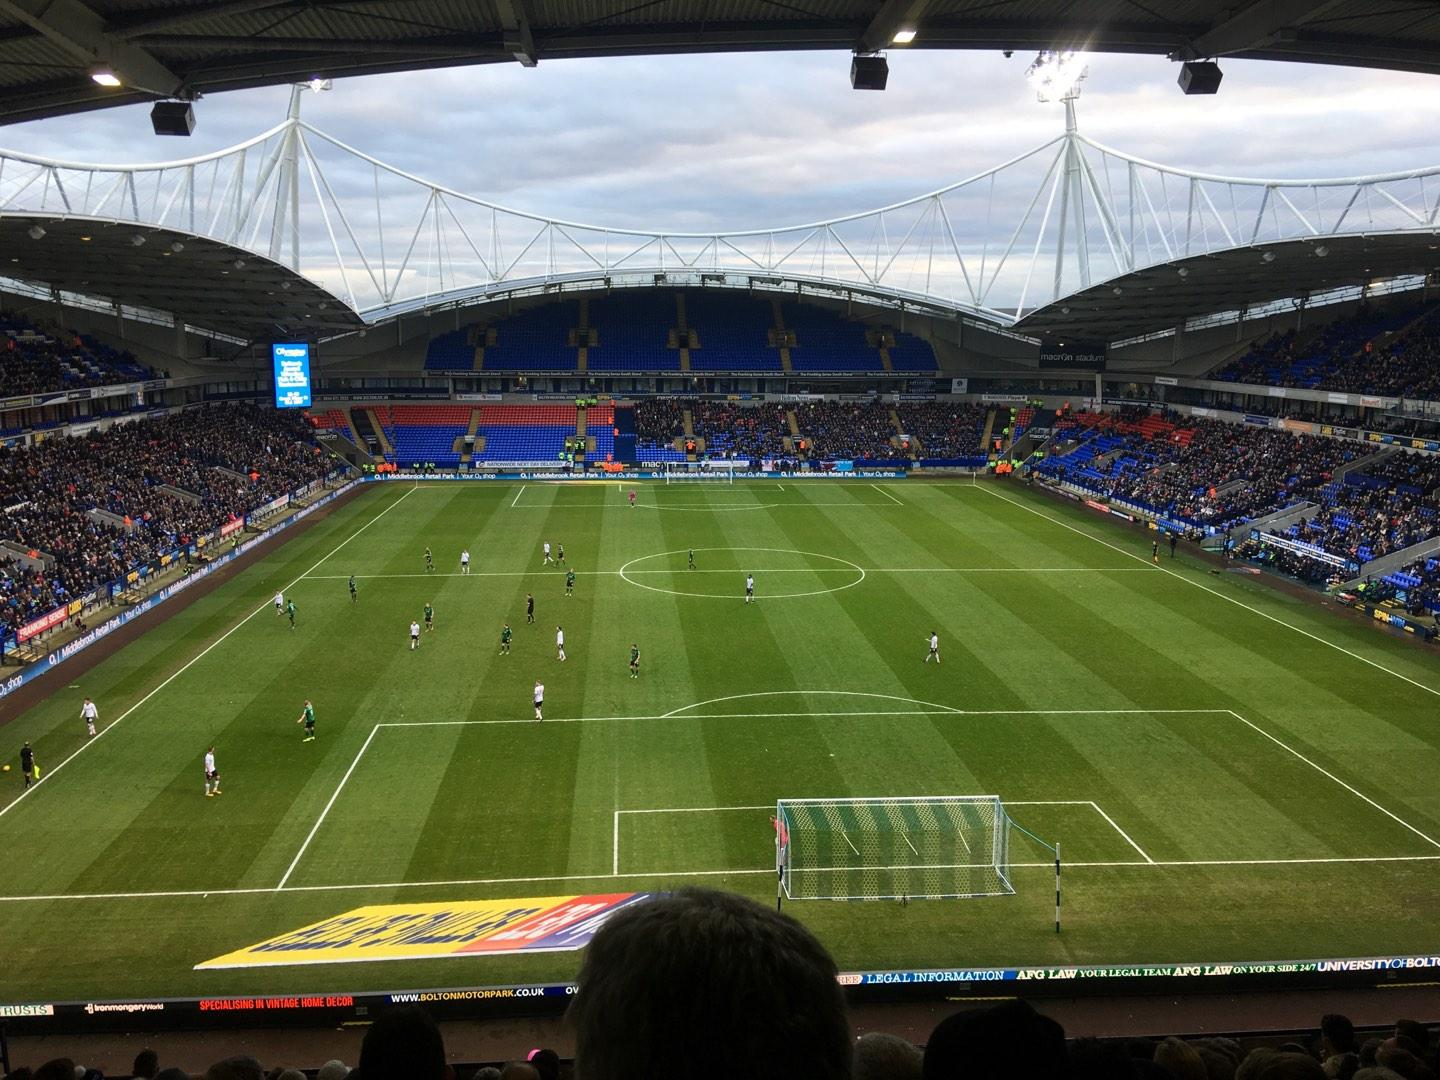 University of Bolton Stadium Secção N Fila LL Lugar 59